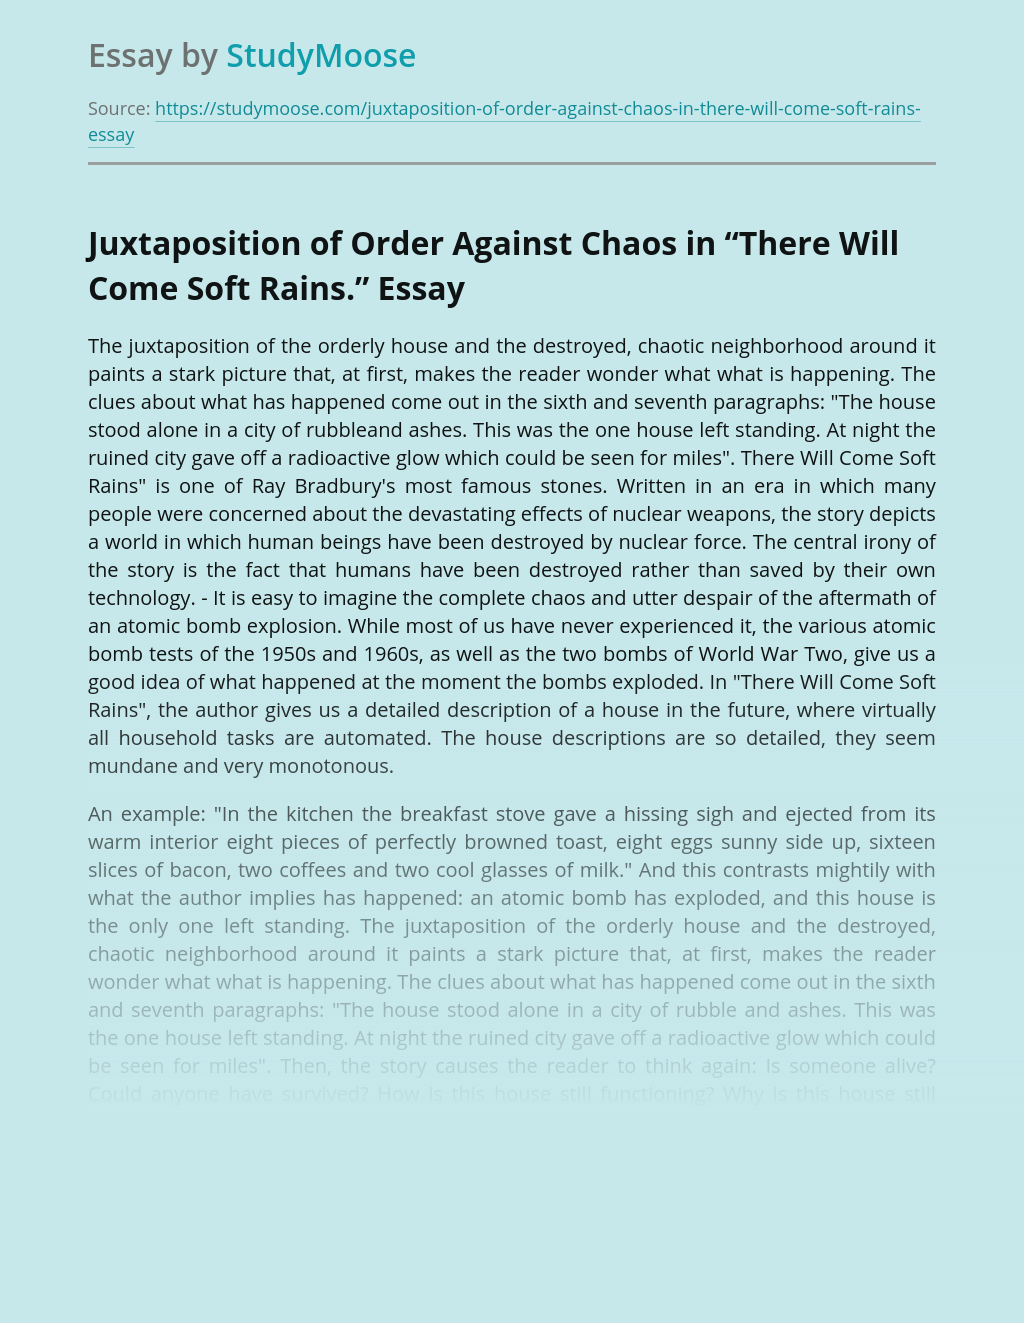 """Juxtaposition of Order Against Chaos in """"There Will Come Soft Rains."""""""